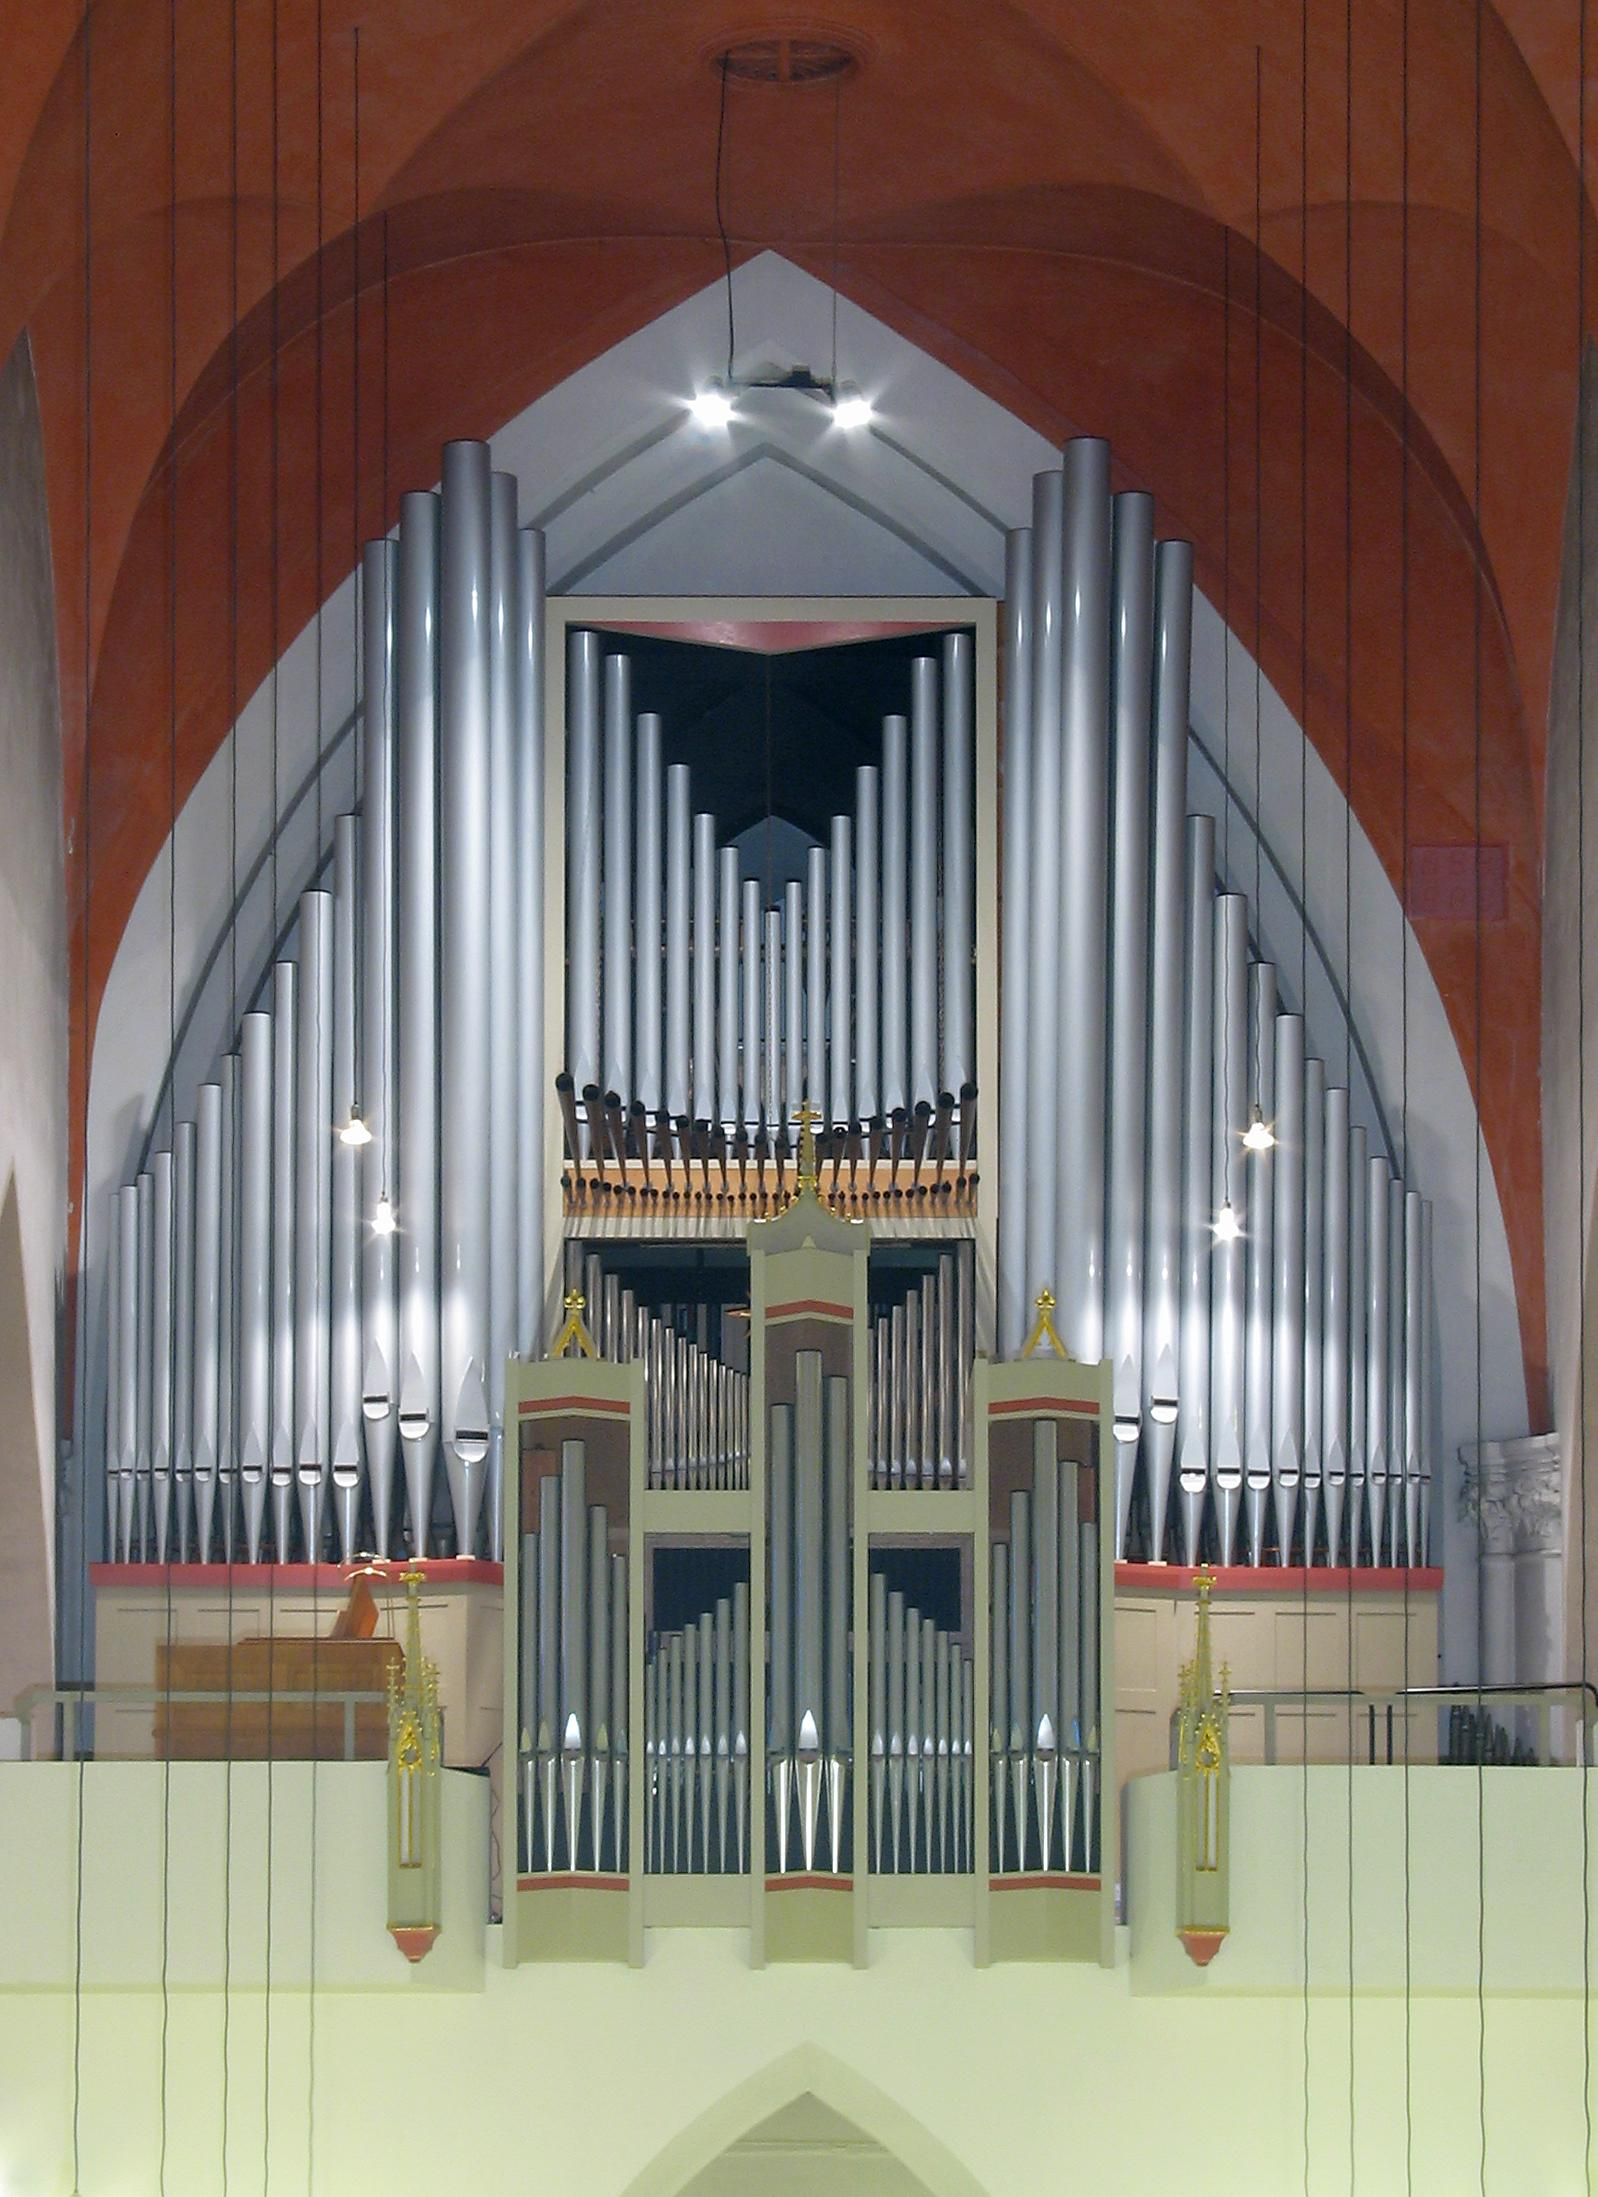 Orgel in St. Andreas (c) Olaf D. Hennig